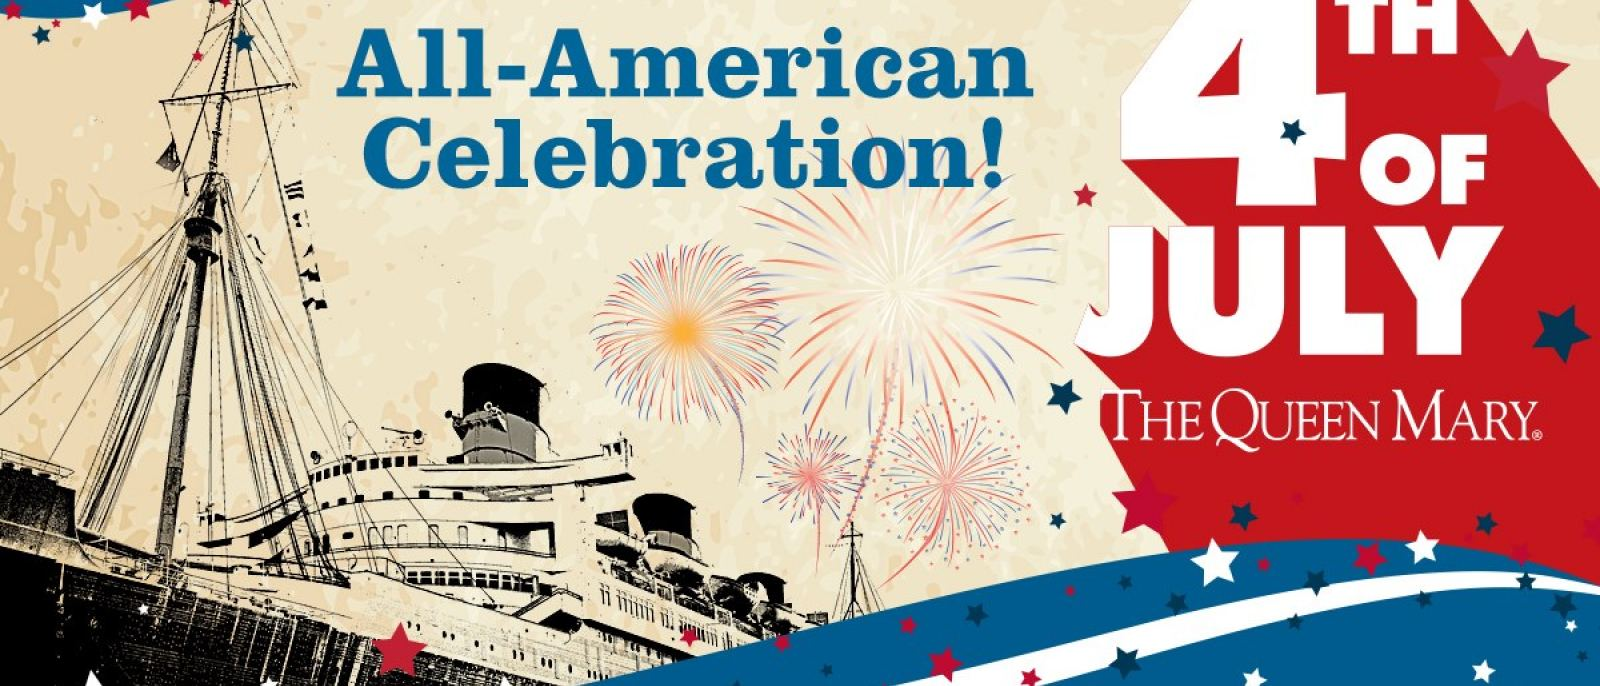 Queen Mary All-American 4th of July